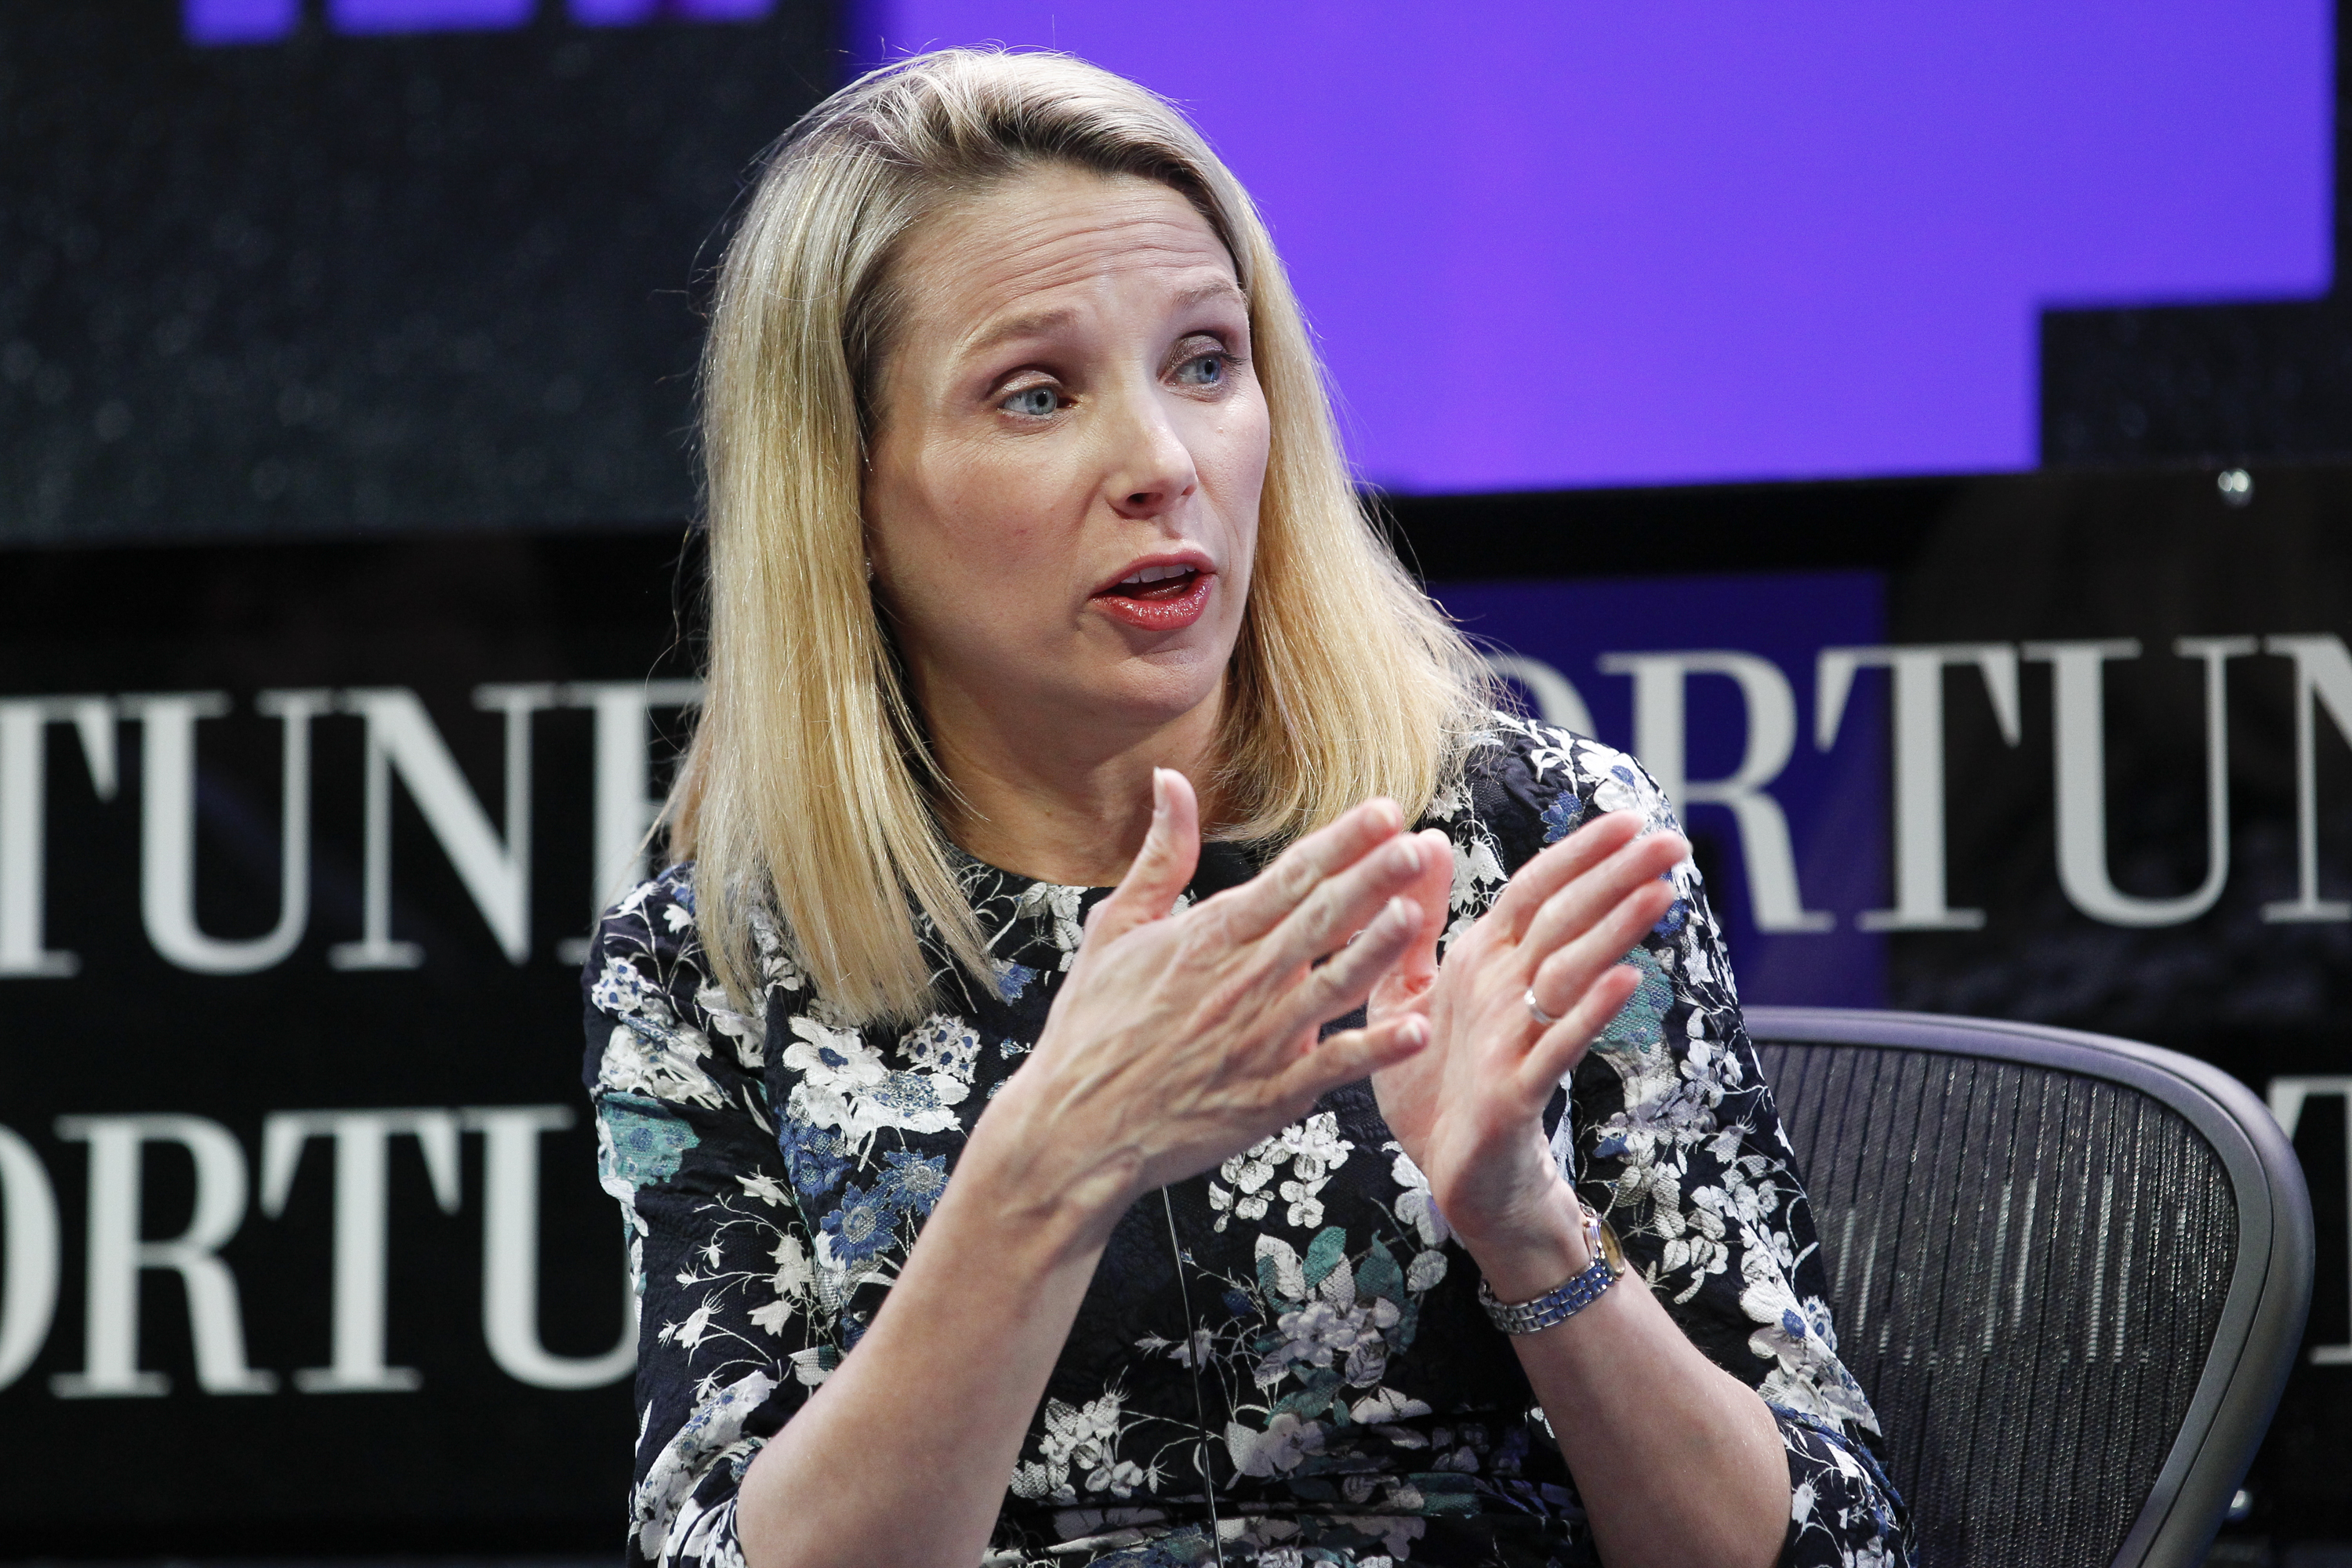 Marissa Mayer speaks during the Fortune Global Forum - Day 2 at the Fairmont Hotel on November 3, 2015 in San Francisco, California.